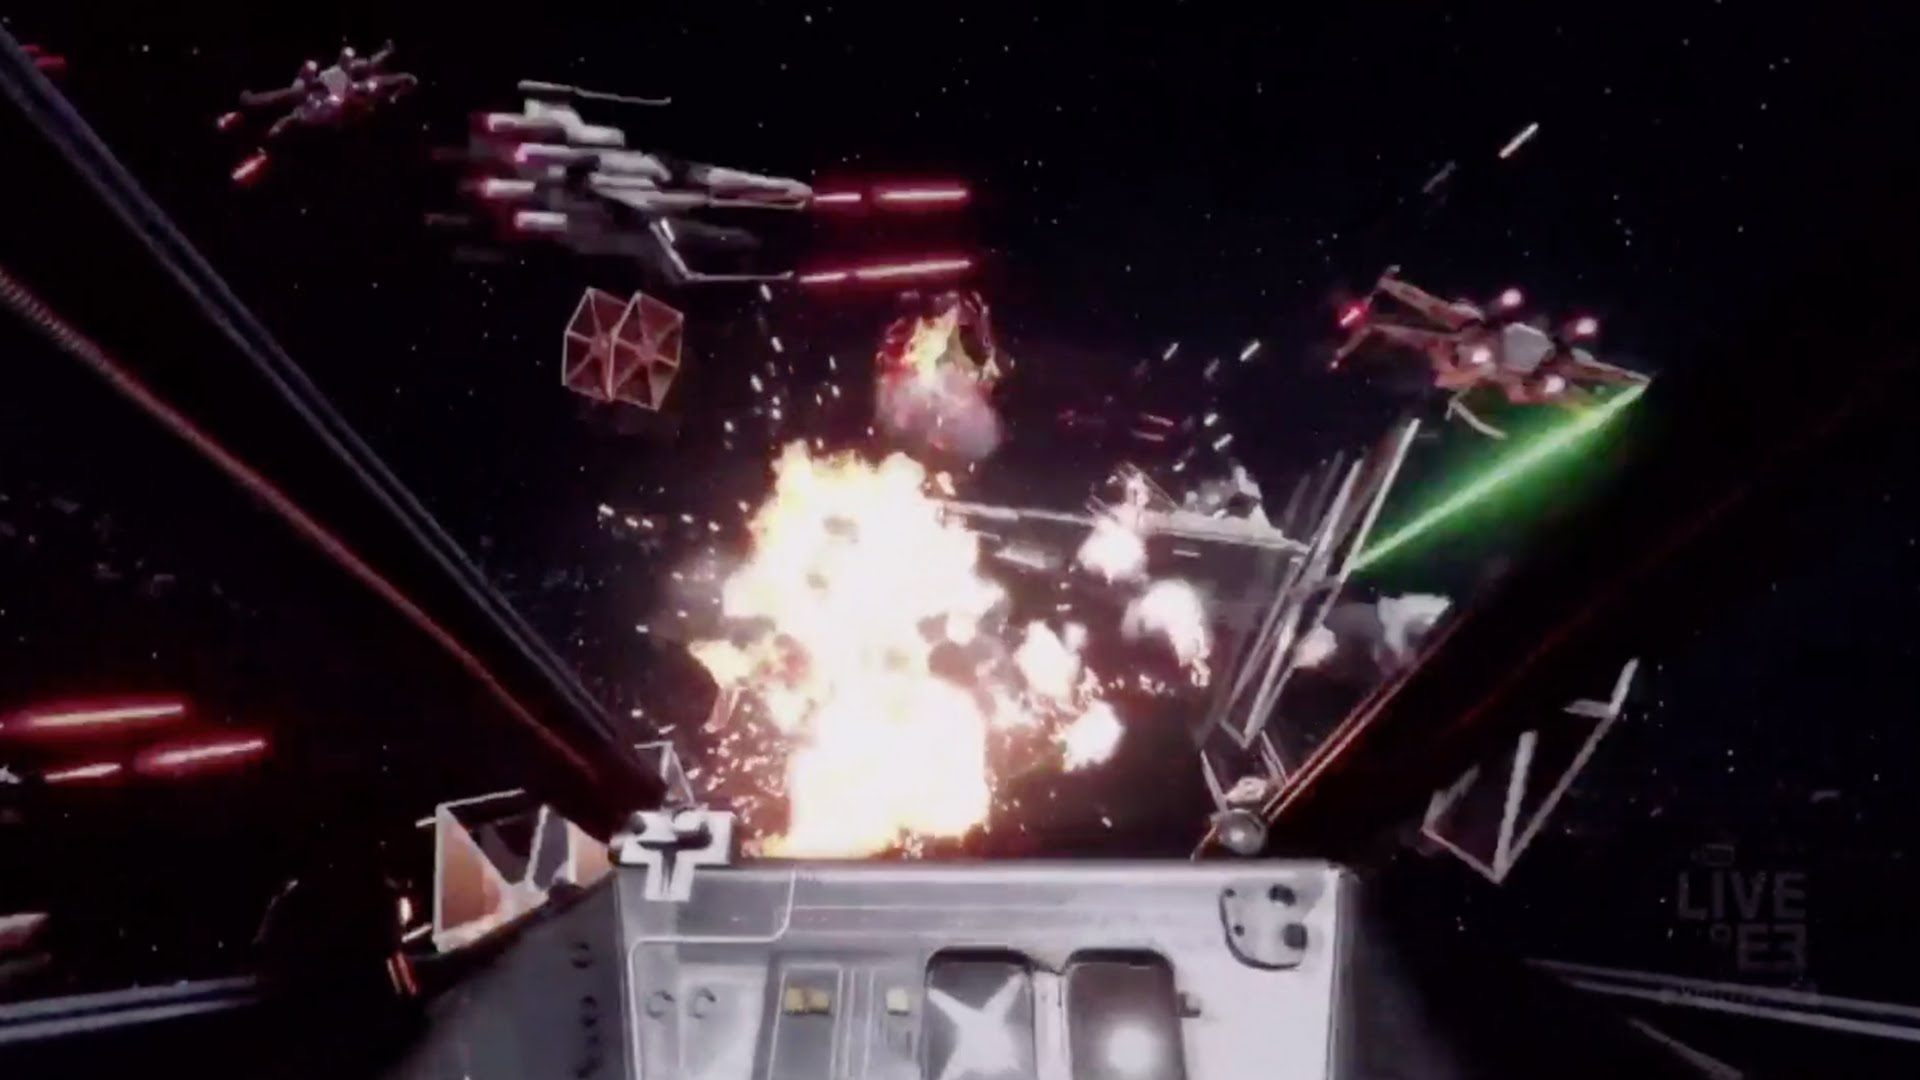 Star Wars Battlefront - Rogue One: X-Wing VR Mission